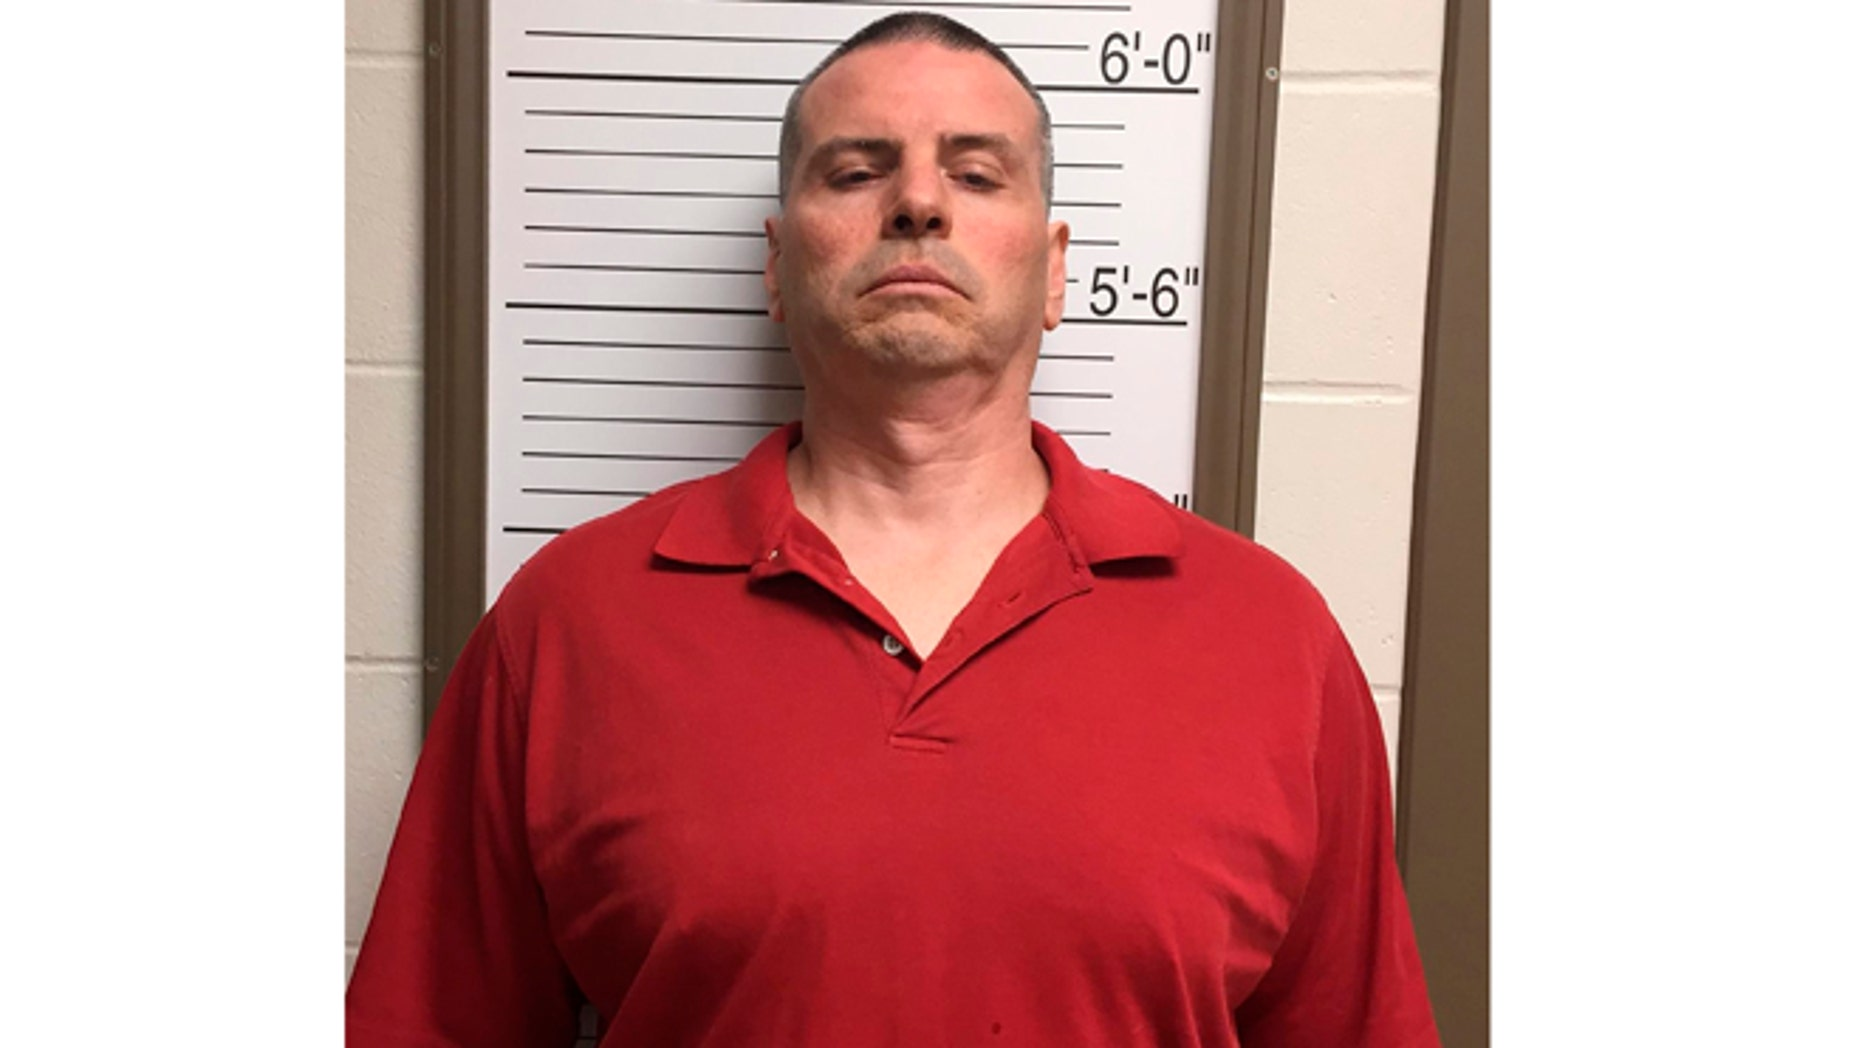 April 24, 2015: In this photo provided by the Brown County Sheriff's Dept. via the Bloomington Herald-Times Daniel Messel stands against a height board for a booking photo at the Brown County Jail in Nashville, Ind.